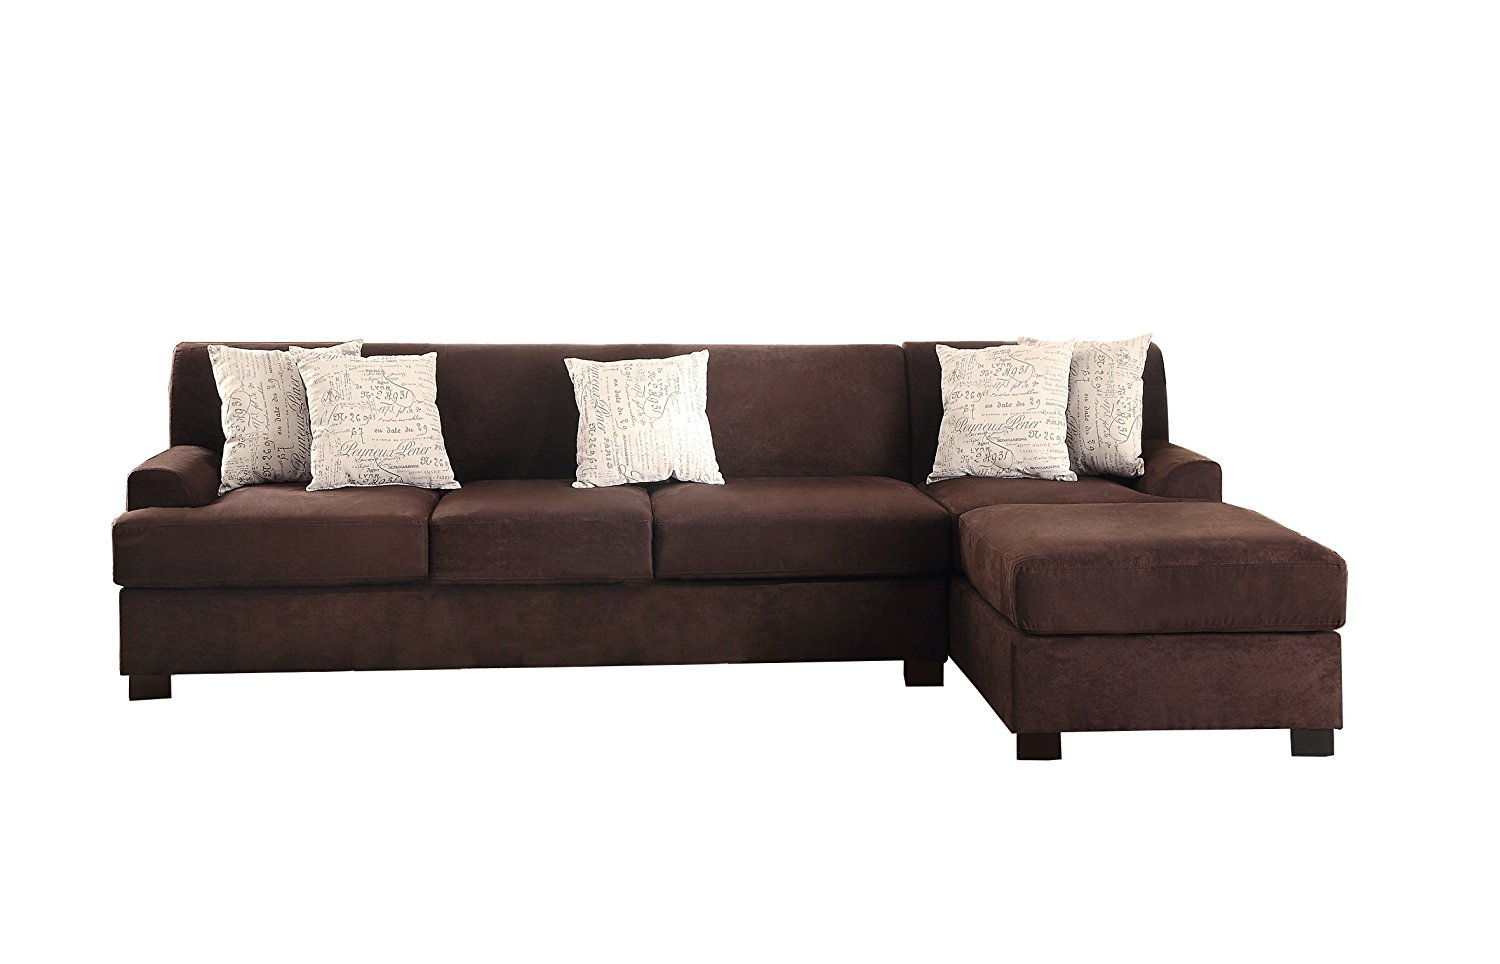 Poundex Bobkona Hudson Microsuede 4-Seat Reversible Sectional Sofa, Chocolate